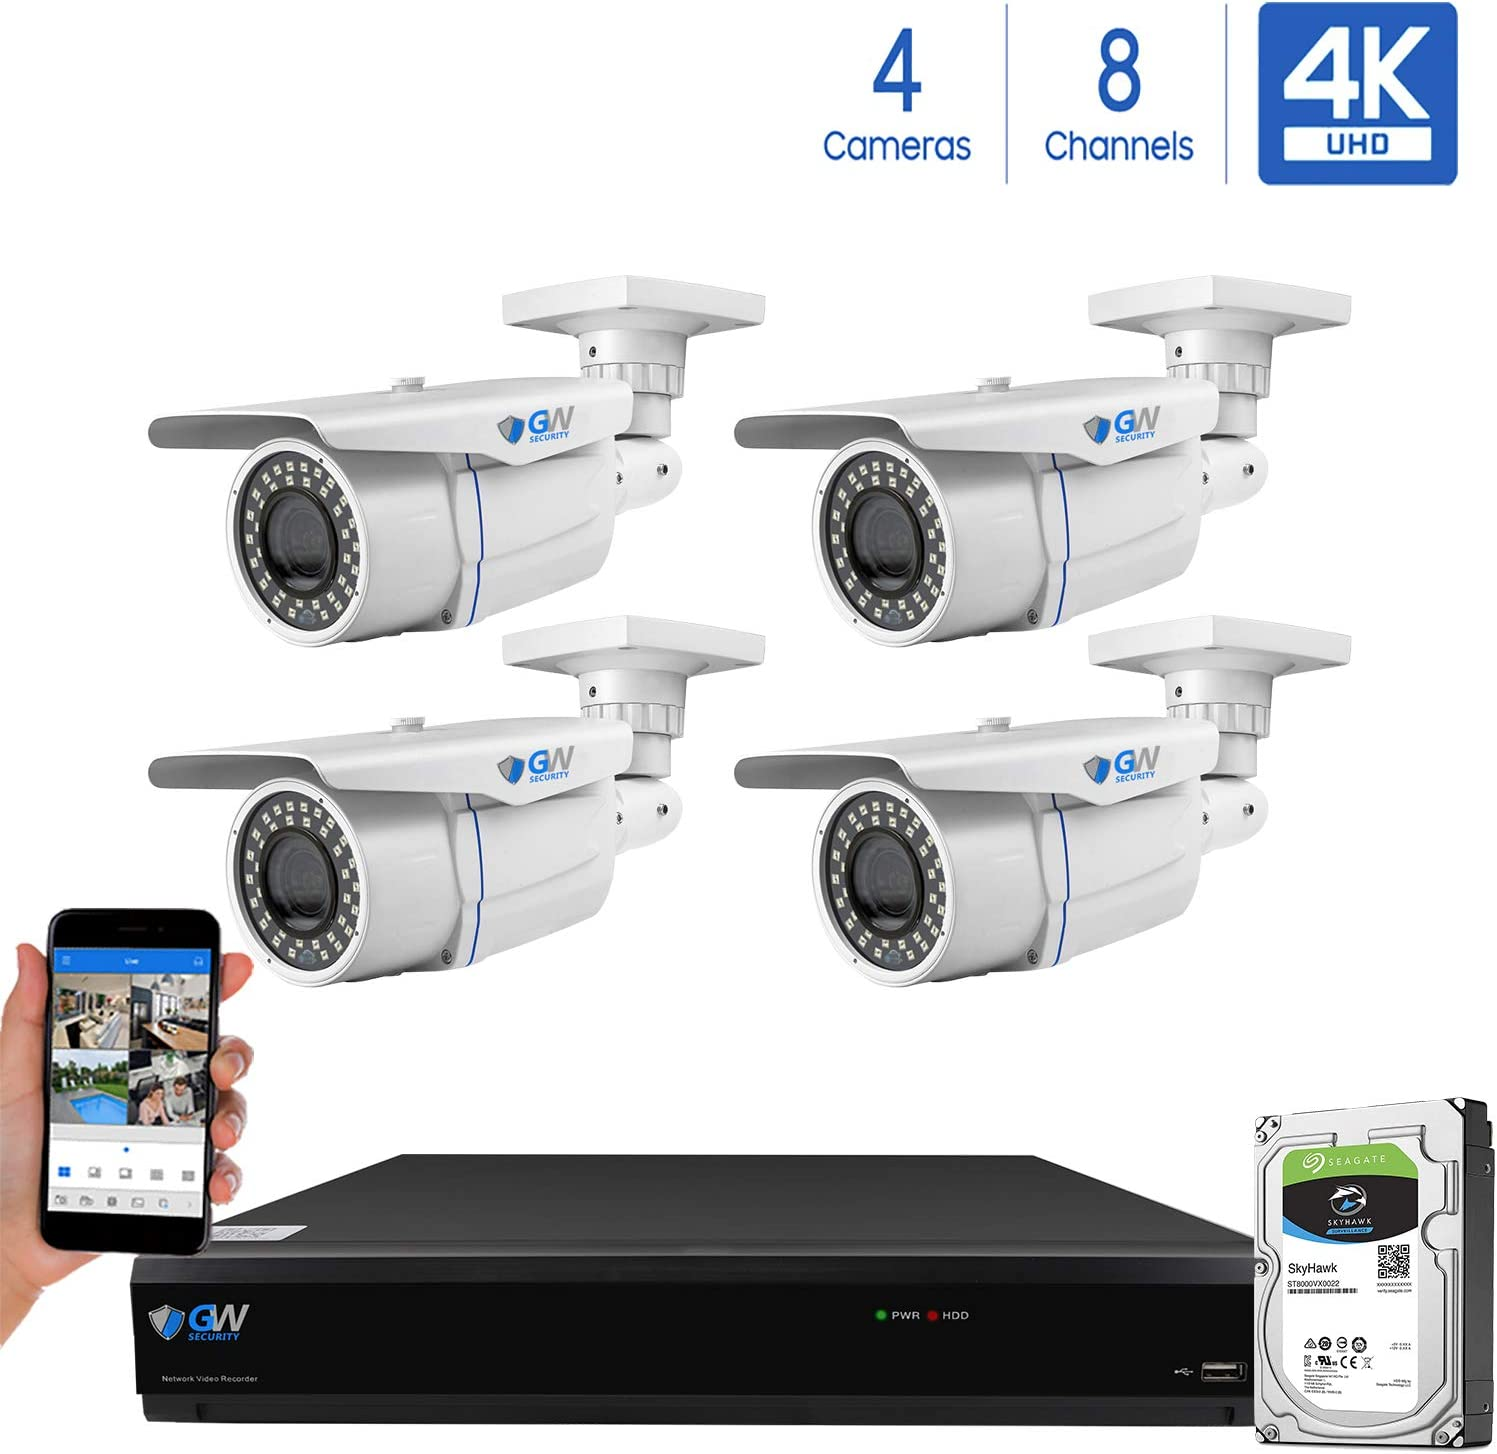 GW 8-Channel 4K H.265 Complete CCTV Security System with 4 x HD 8MP 2160P Outdoor Indoor 2.8-12mm Varifocal Zoom 4K Bullet Security Cameras and 2TB HDD, QR Code Scan Free Remote View